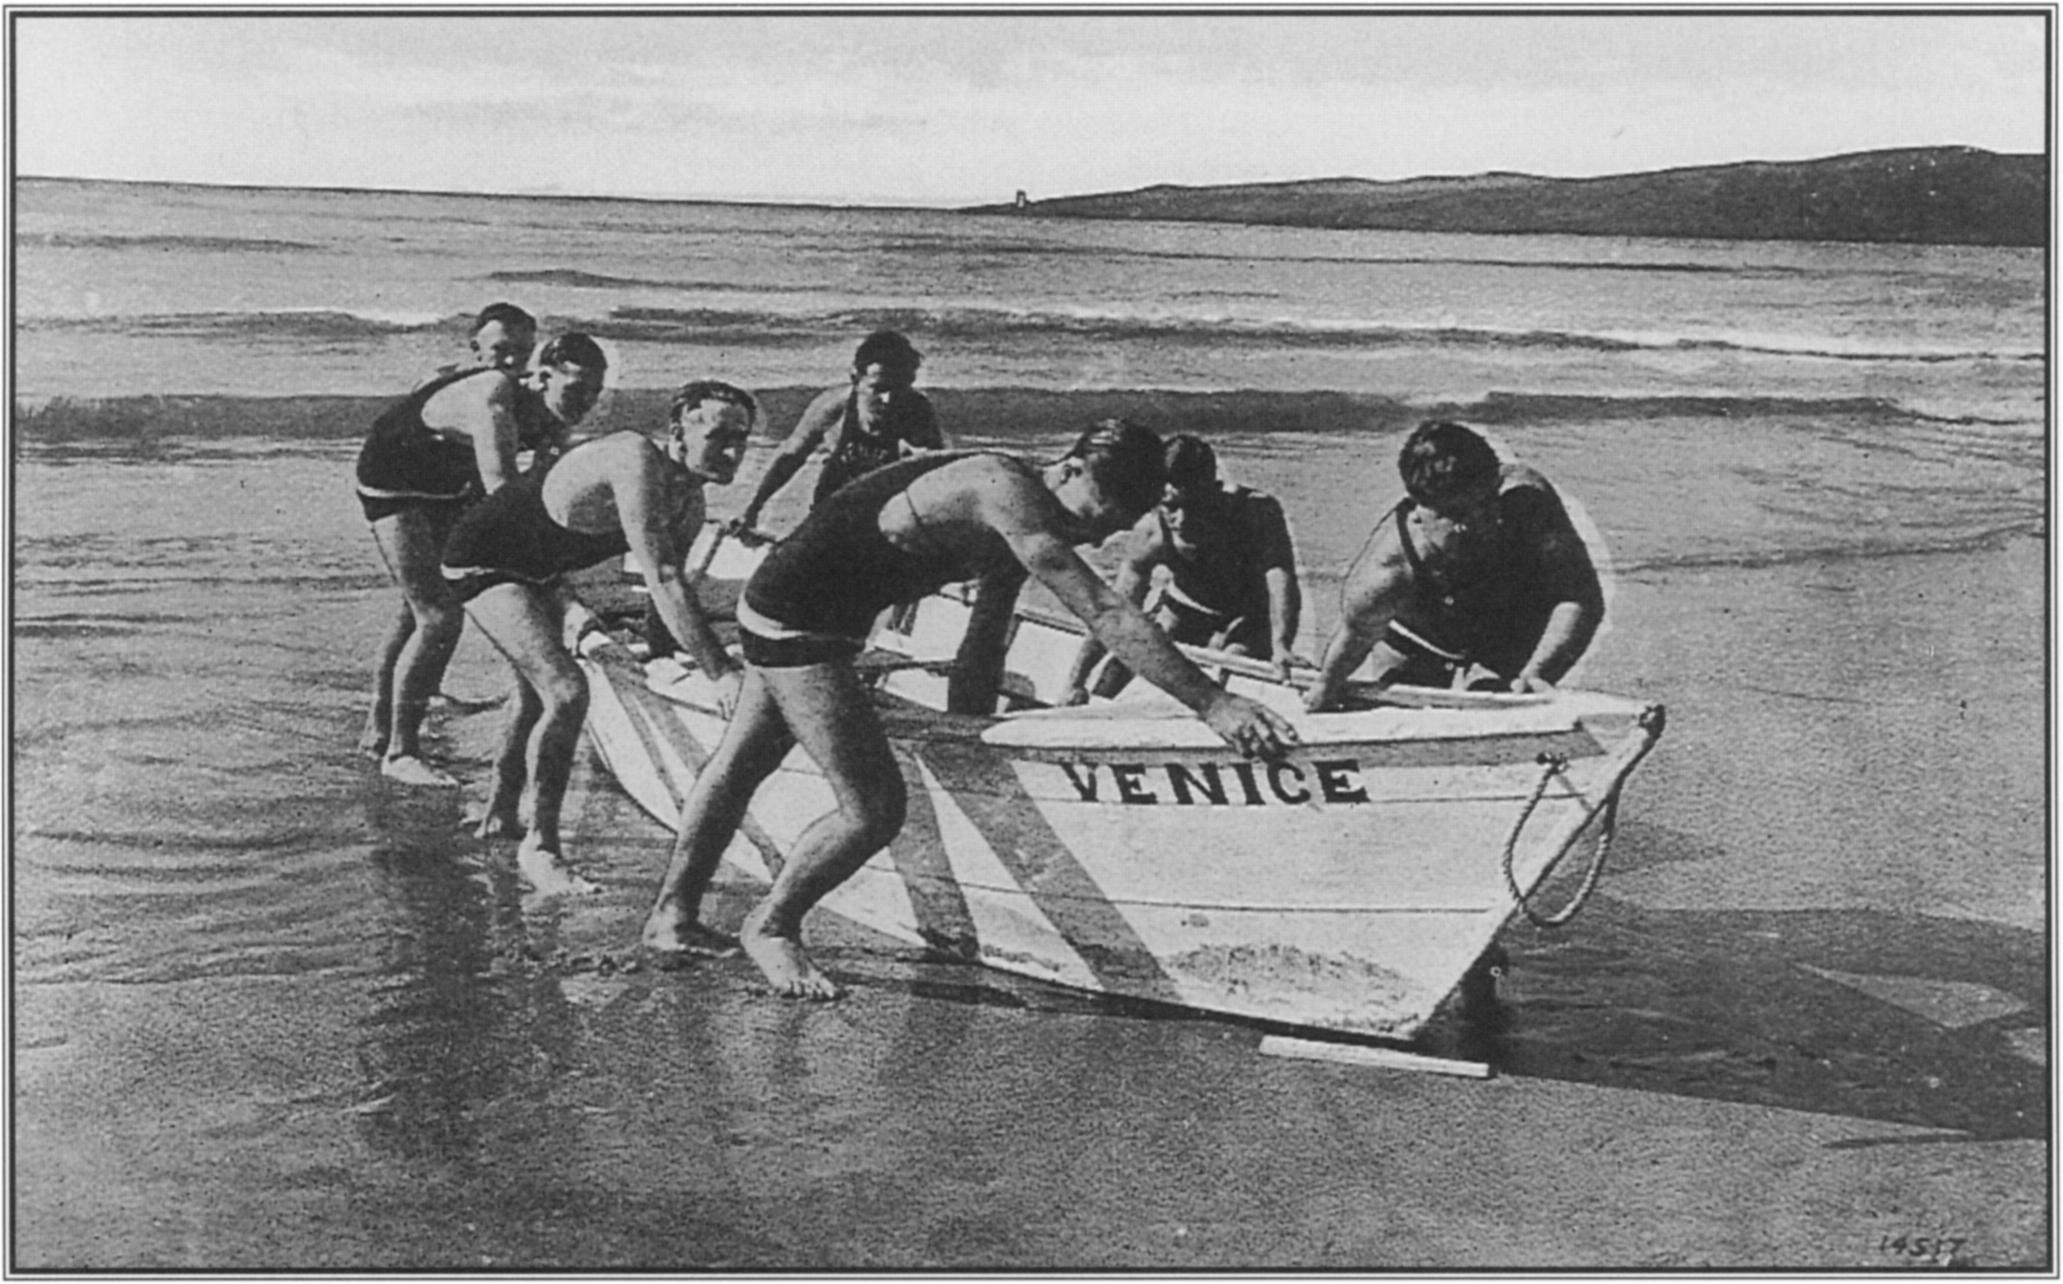 Launching and christening the Venice, the new lifeboat purchased for the Venice Volunteer Lifesaving Corps, was a public event of note. The following year, bringing in  the boat after a practice rowing session  was recorded on this 1908 postcard.